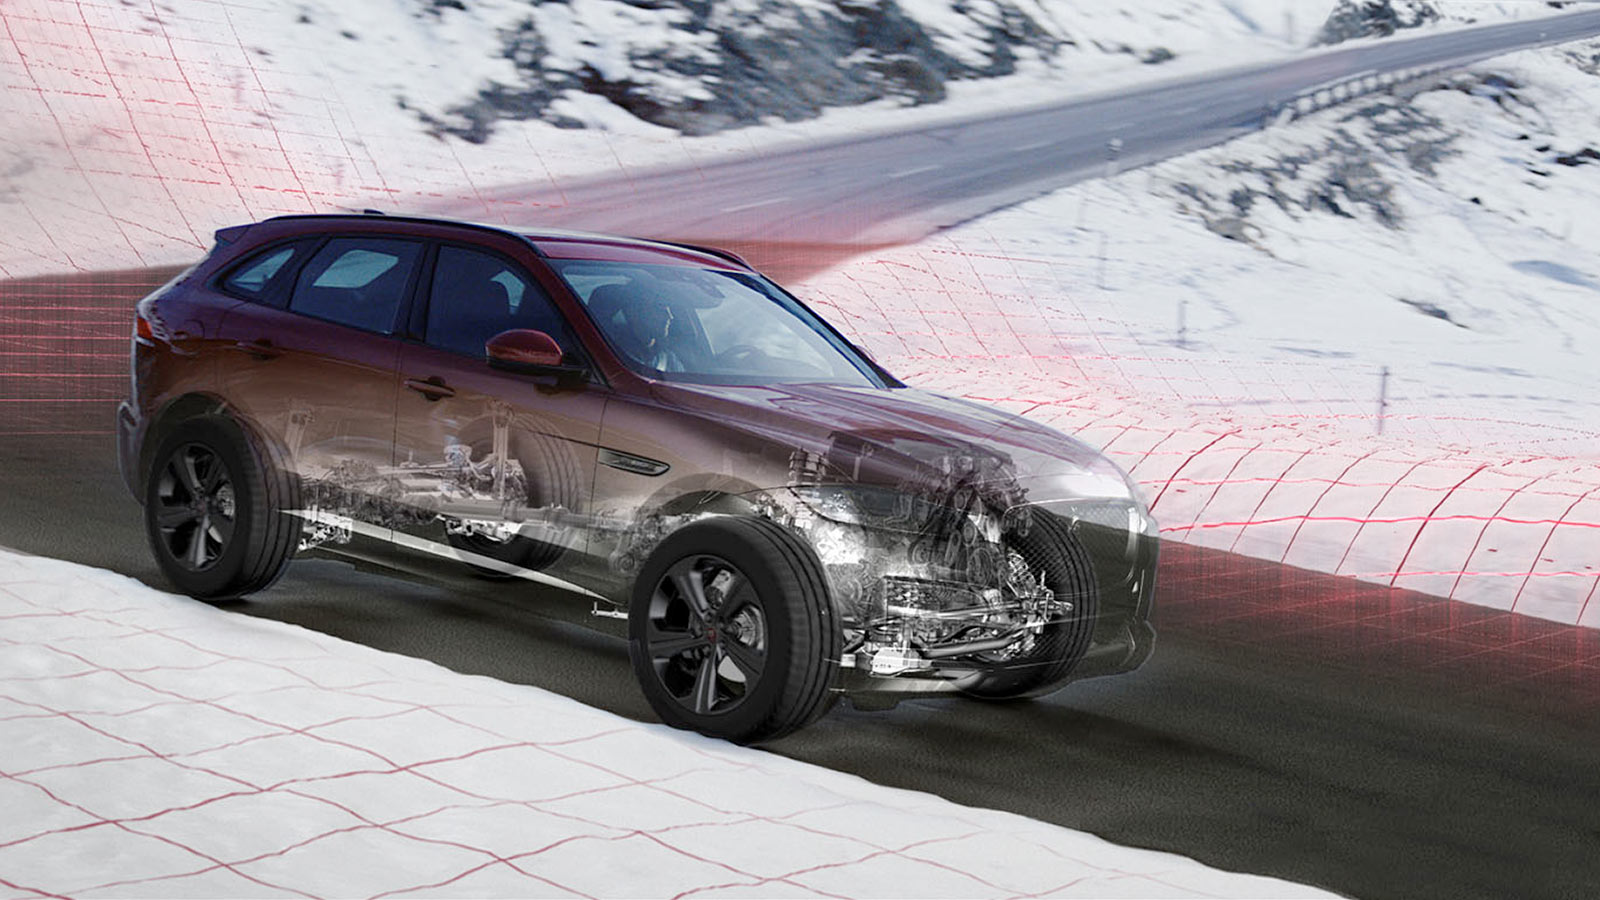 Jaguar F-Pace On Road Snow